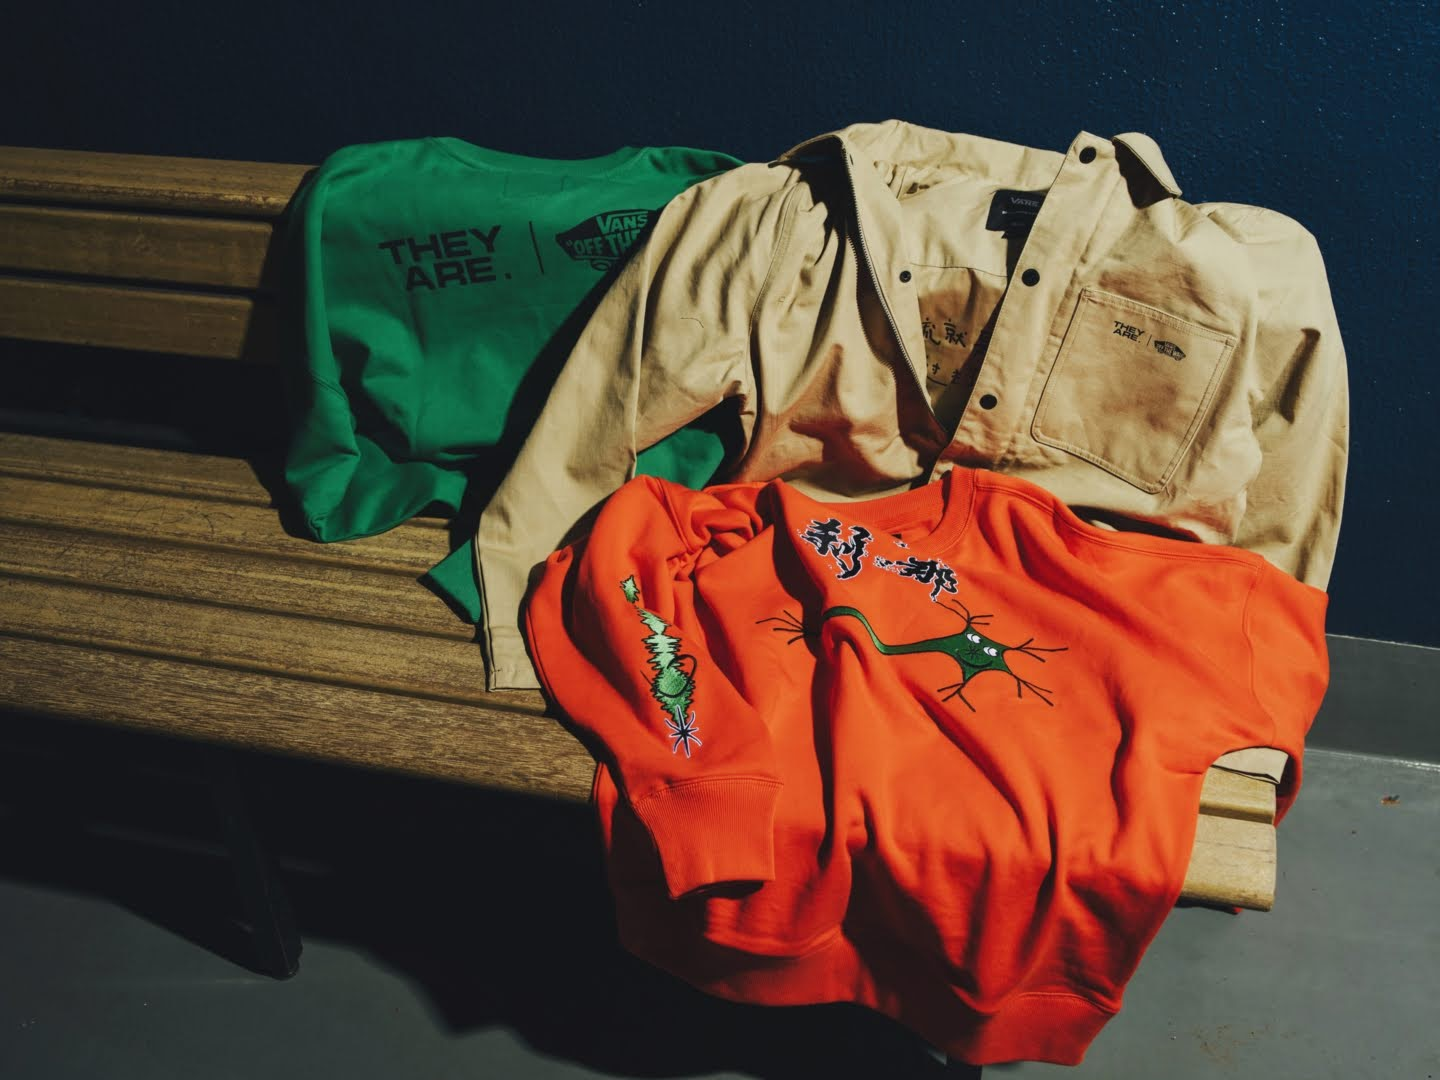 """VANS × THEY ARE """"THE YEAR OF THE OX"""" Collection】バンズ × ゼイ アー """"ザ イヤー オブ ザ OX"""" コレクション apparel main"""